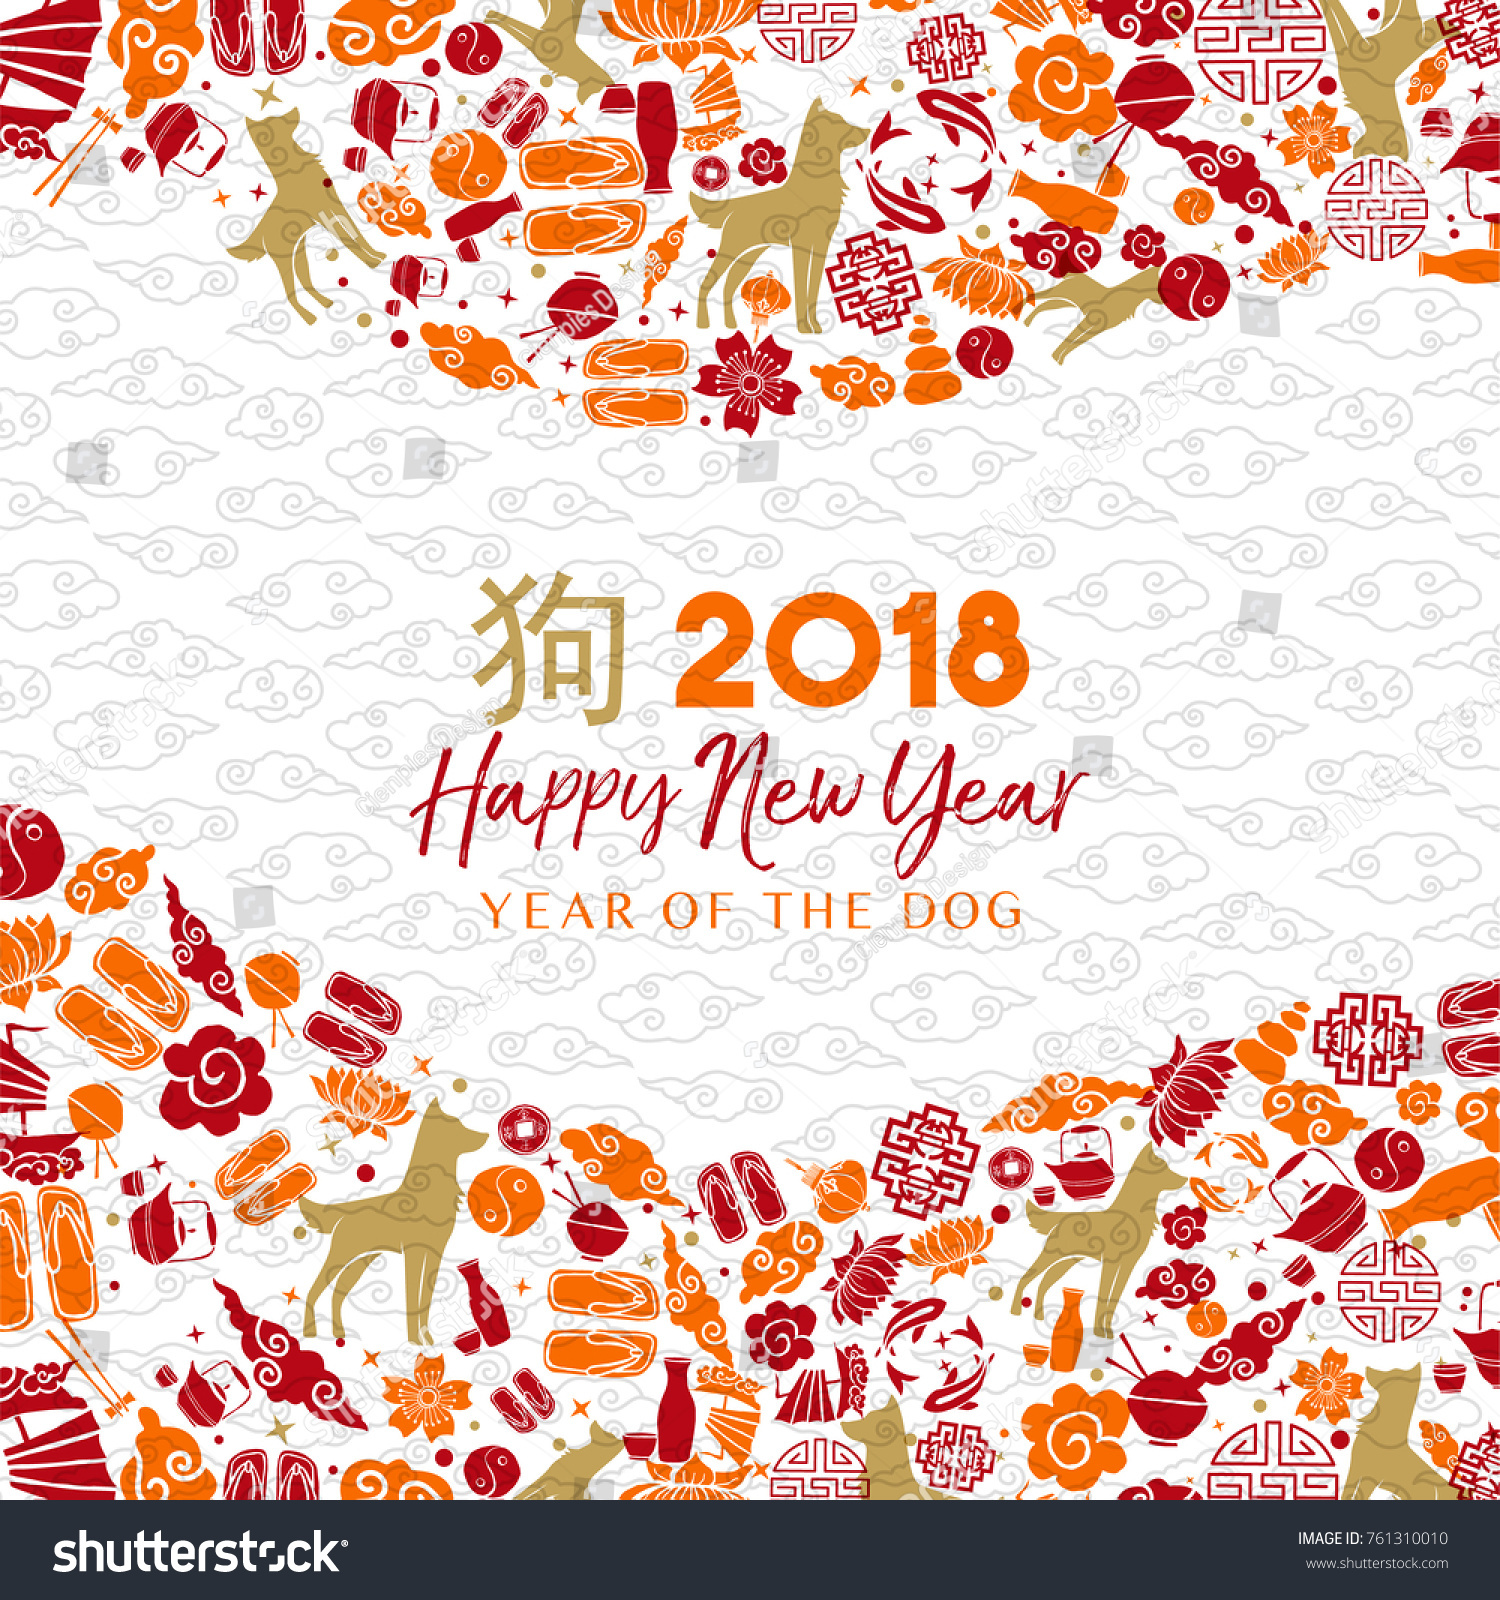 happy chinese new year of the dog 2018 greeting card illustration with celebration quote and traditional